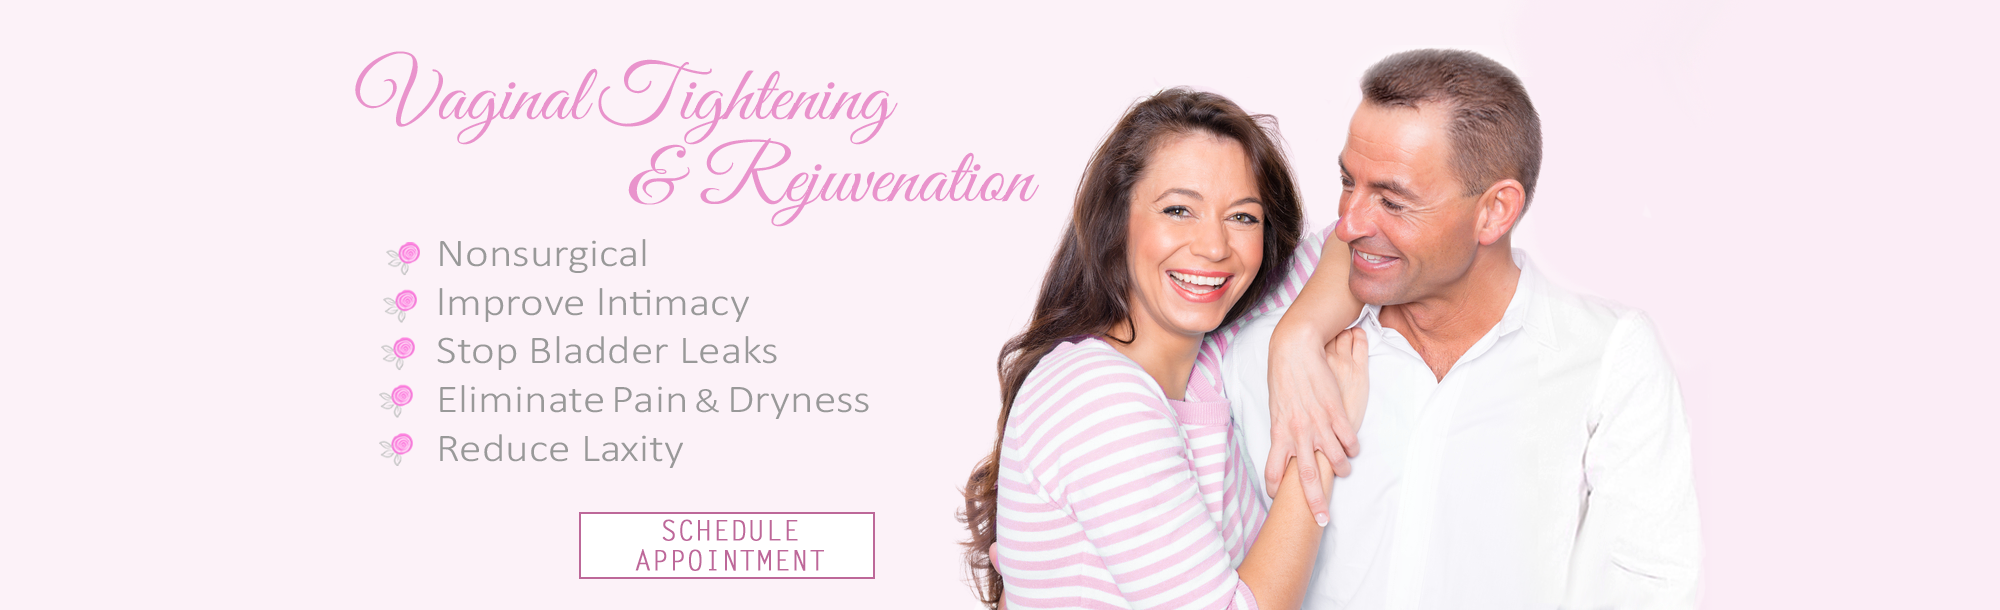 Vaginal Rejuvenation Tulsa OK